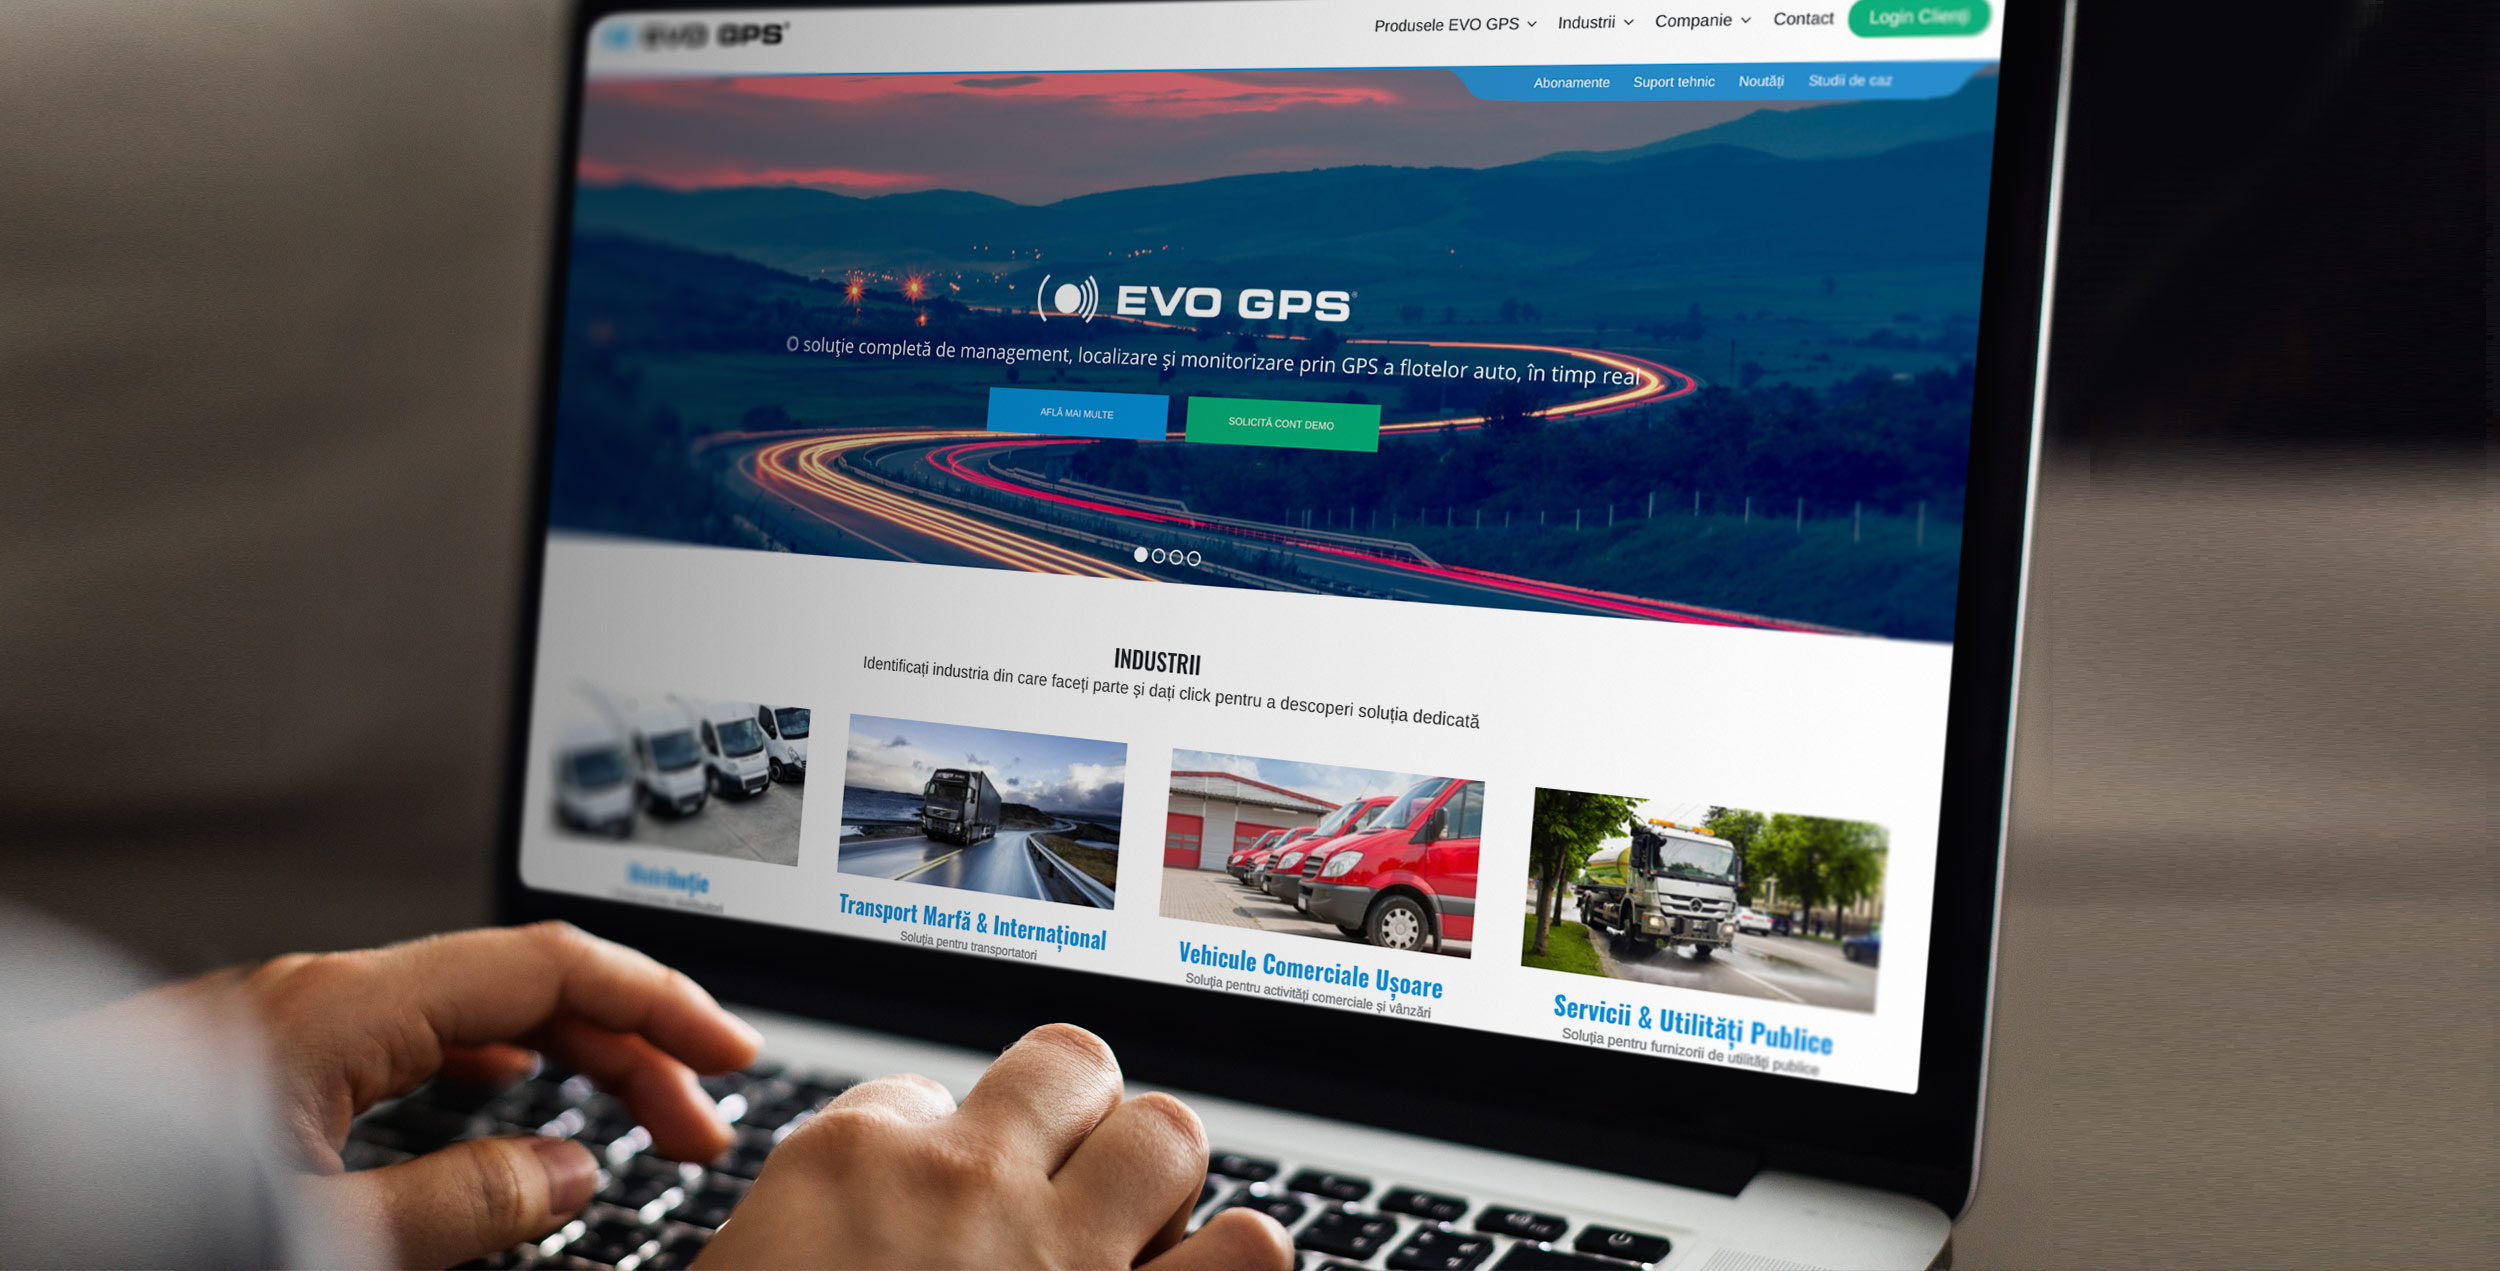 EVO GPS Website opened on a laptop